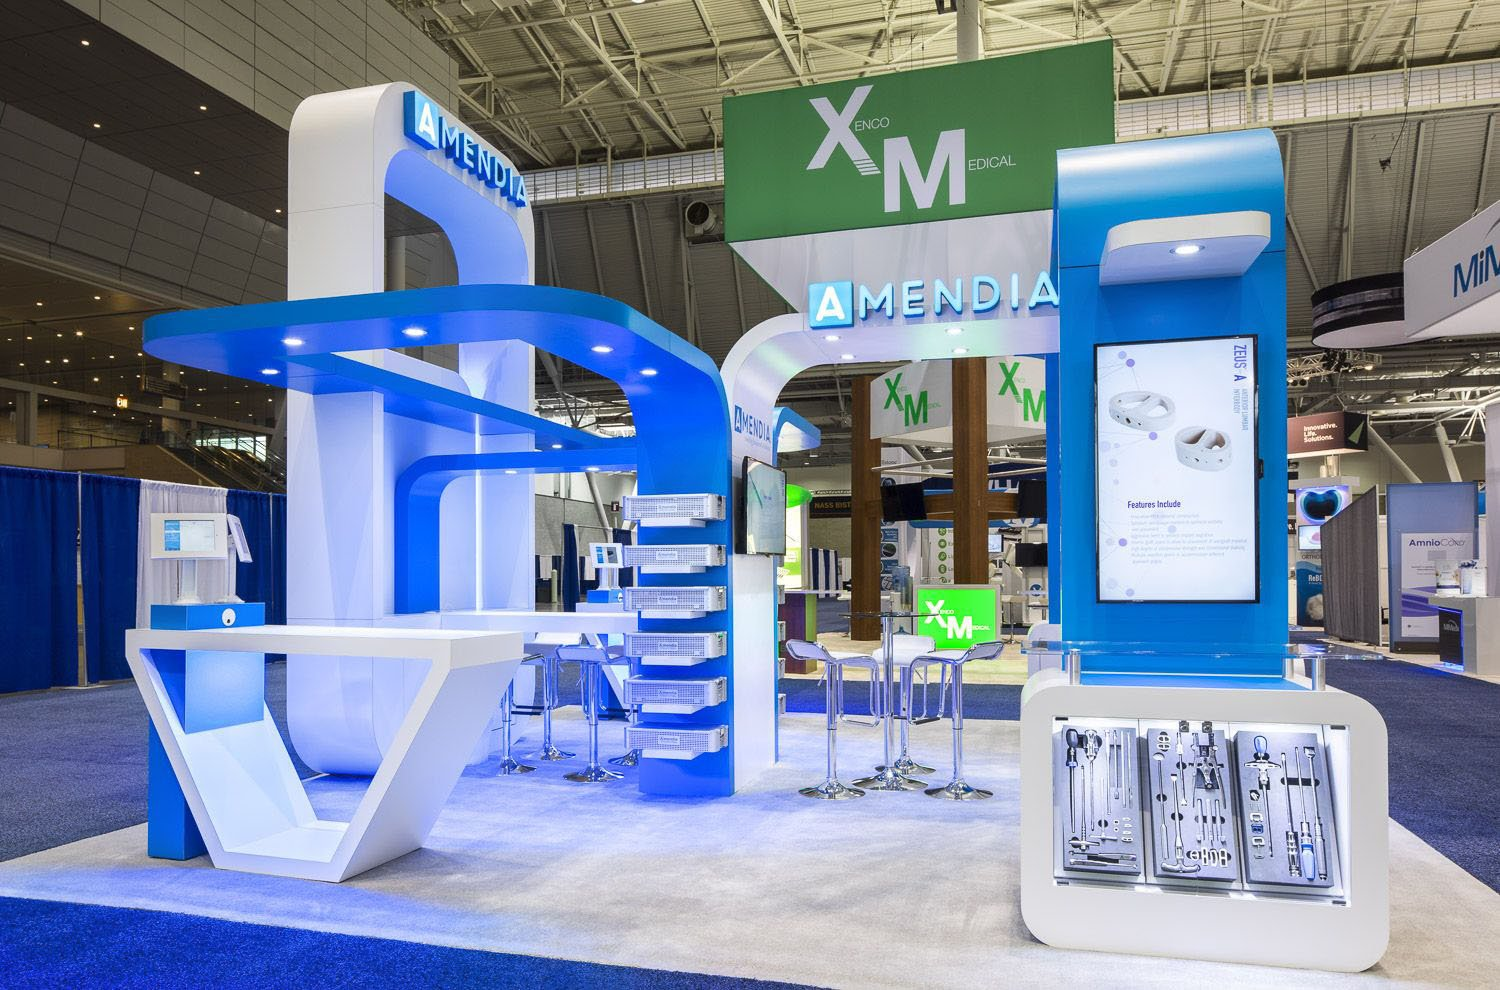 Education Exhibition Booth Design : Trade show booth design display tips ideas to attract